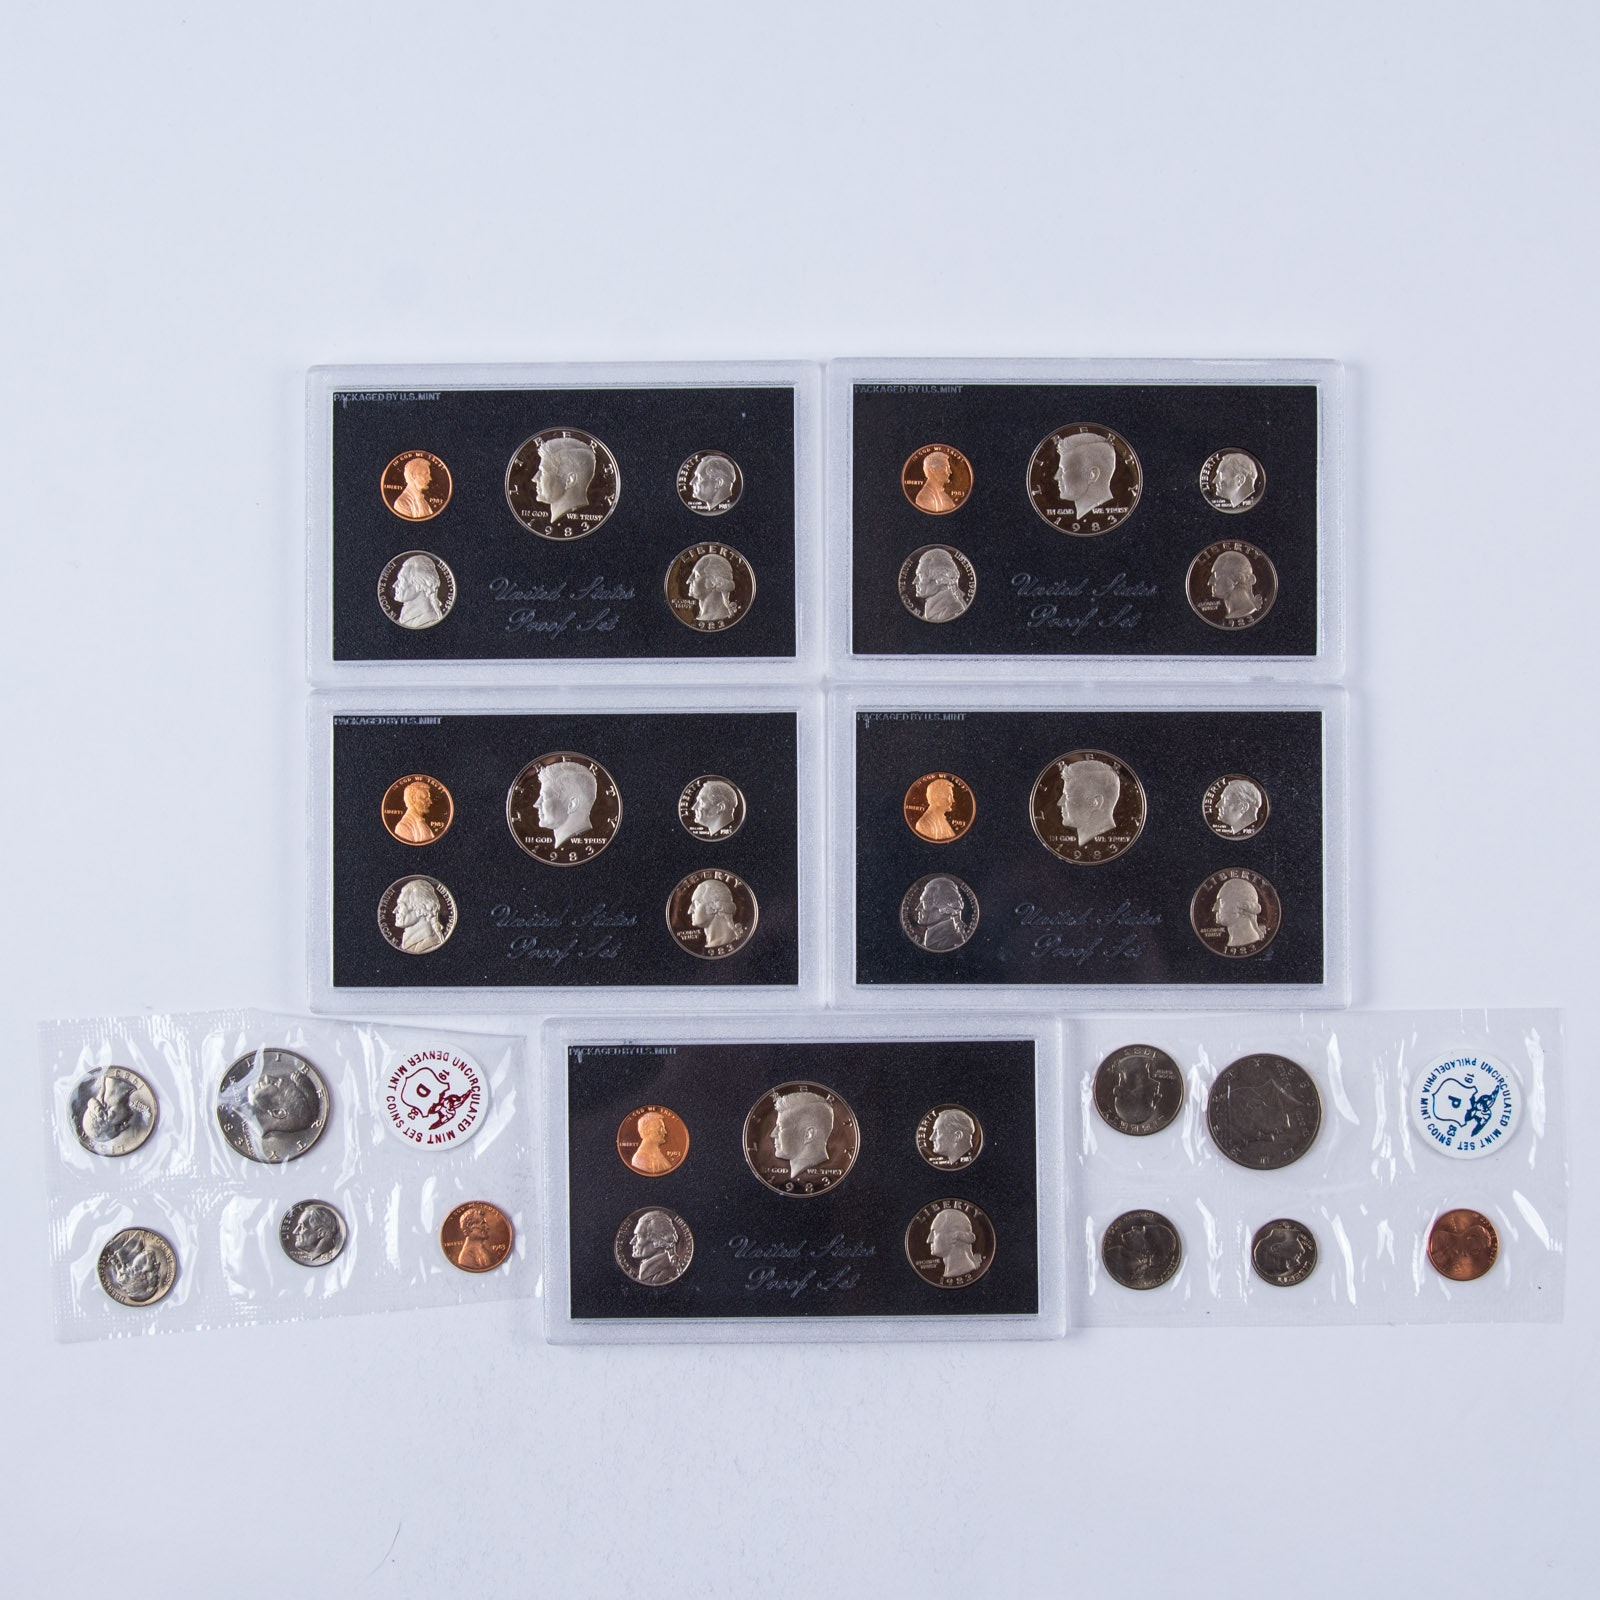 1983 Unites States Proof and Uncirculated Coin Set